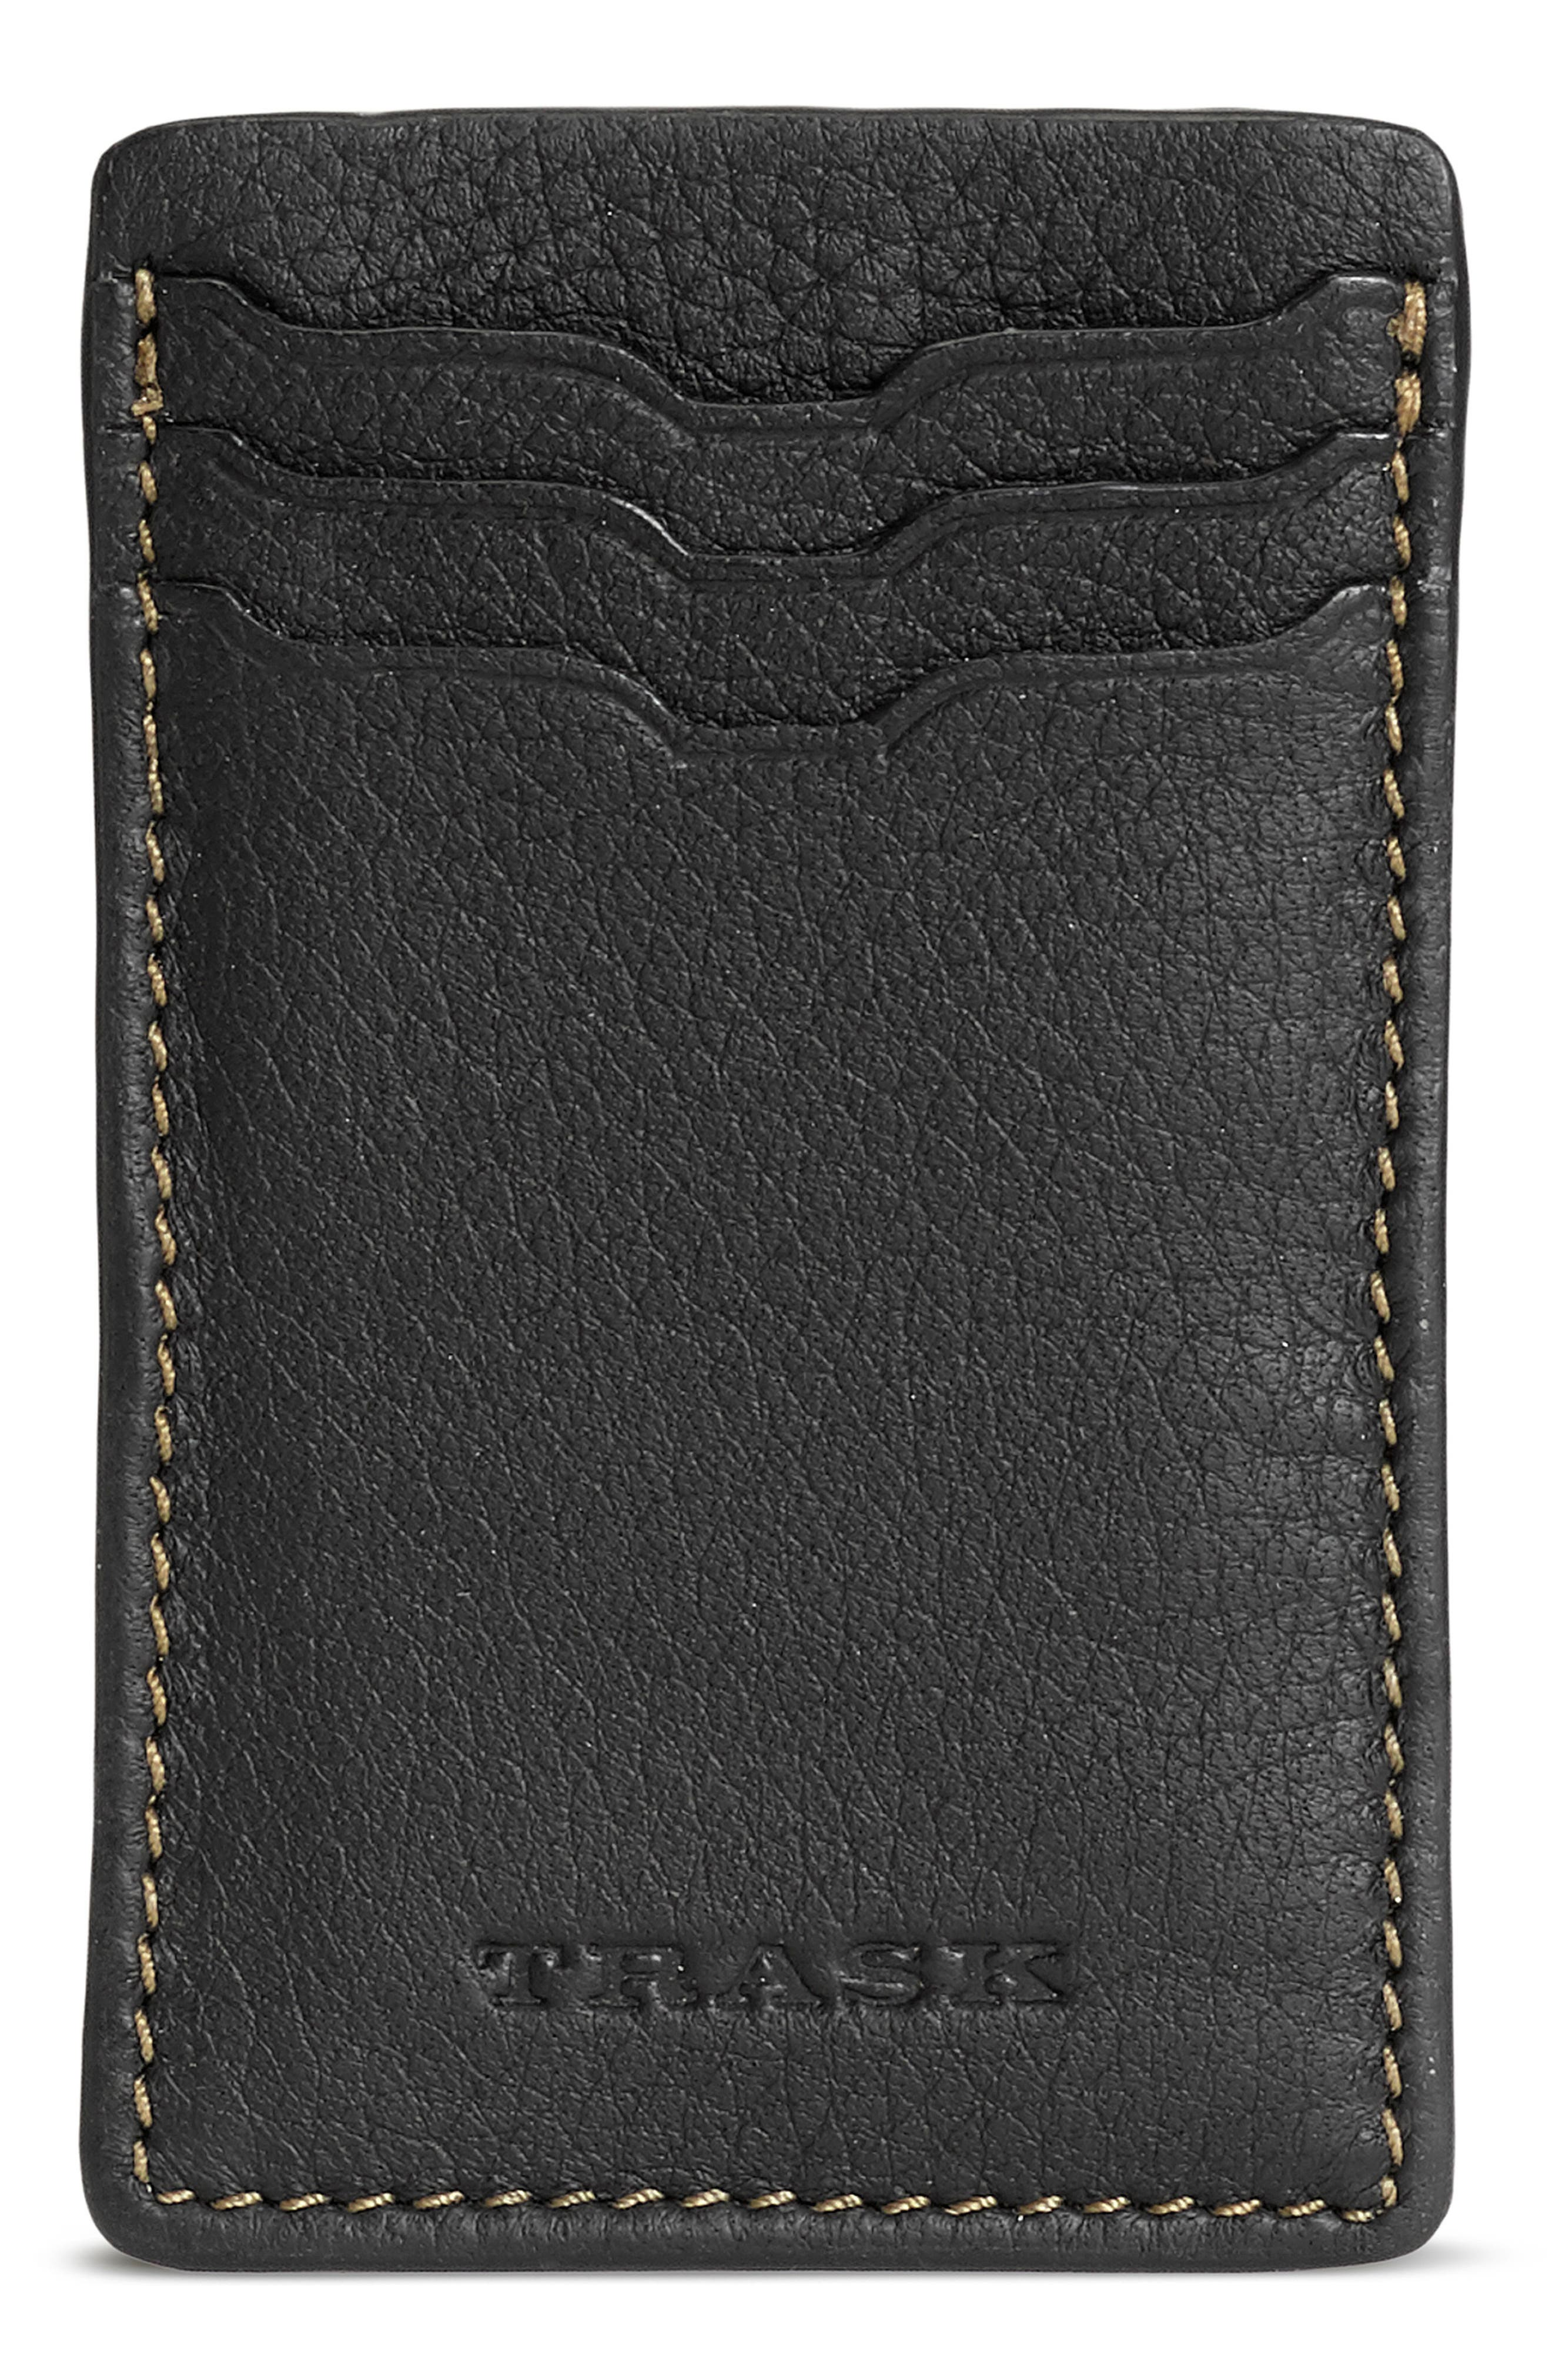 Built from Norwegian elk or American bison leather, this handsome wallet offers a fusion of form and function with easy appeal. RFID shielding helps protect your personal information. Style Name: Trask Jackson Leather Front Pocket Wallet. Style Number: 5995818. Available in stores.